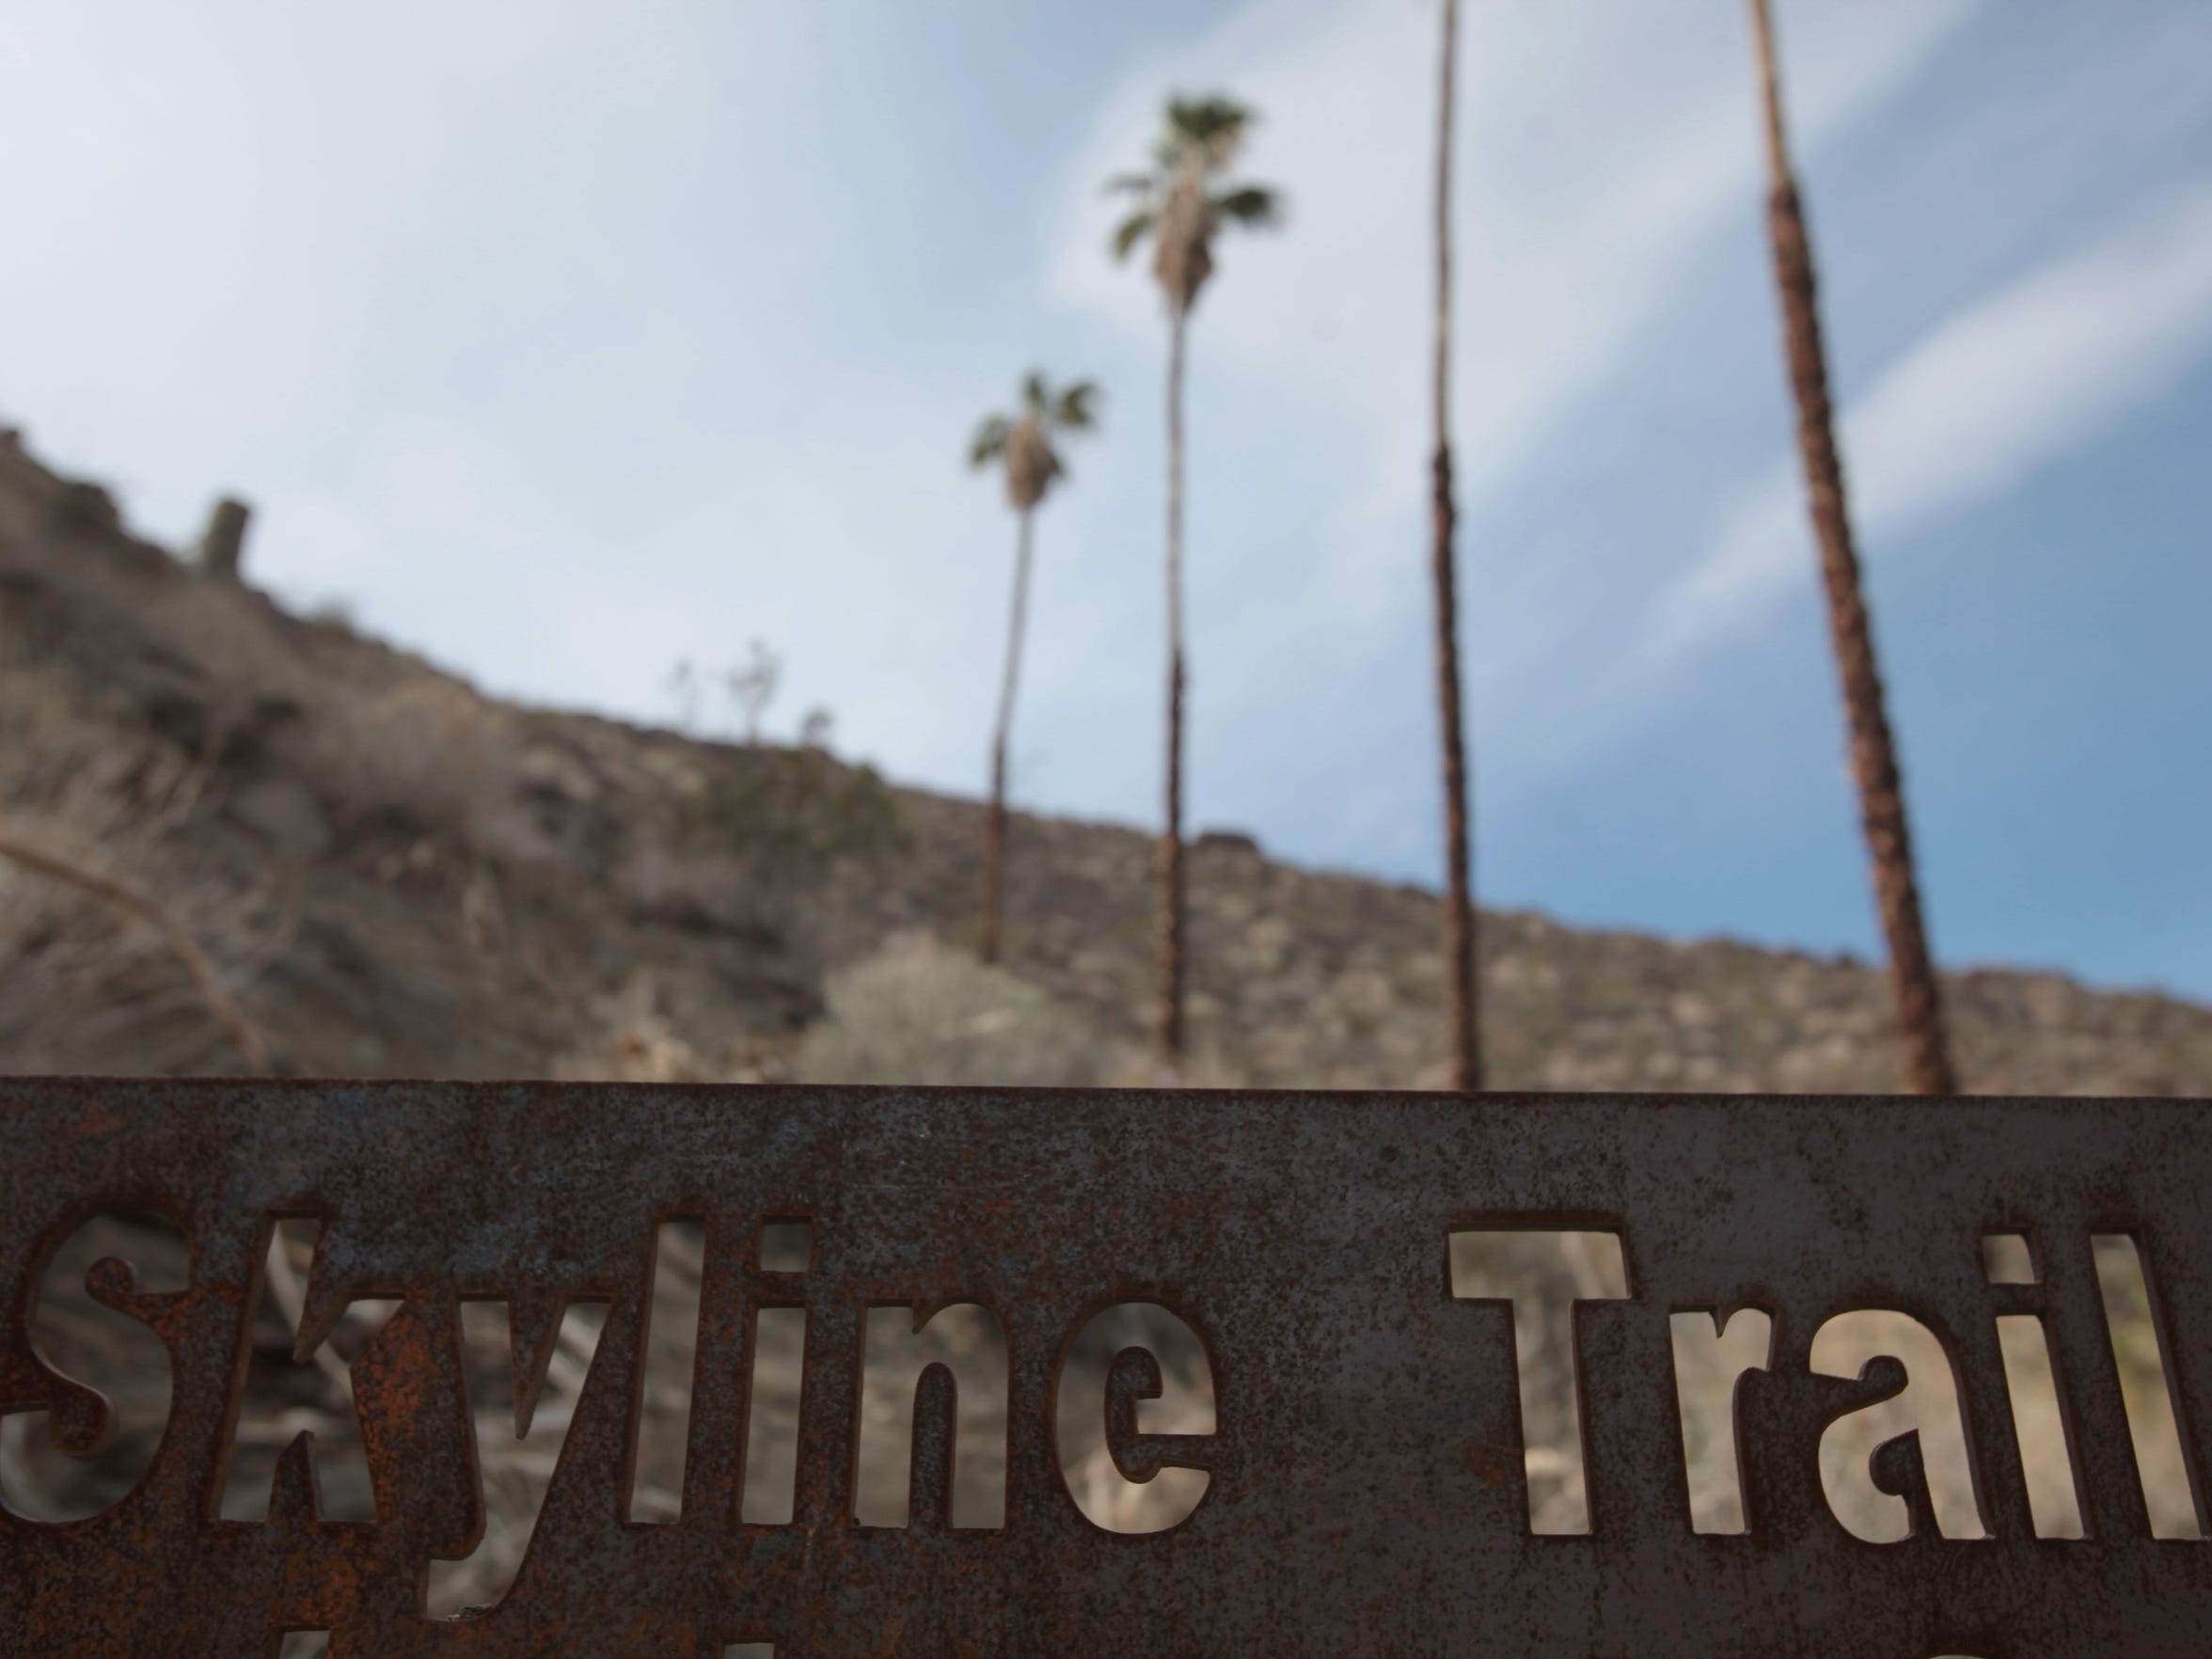 Skyline Trail sign